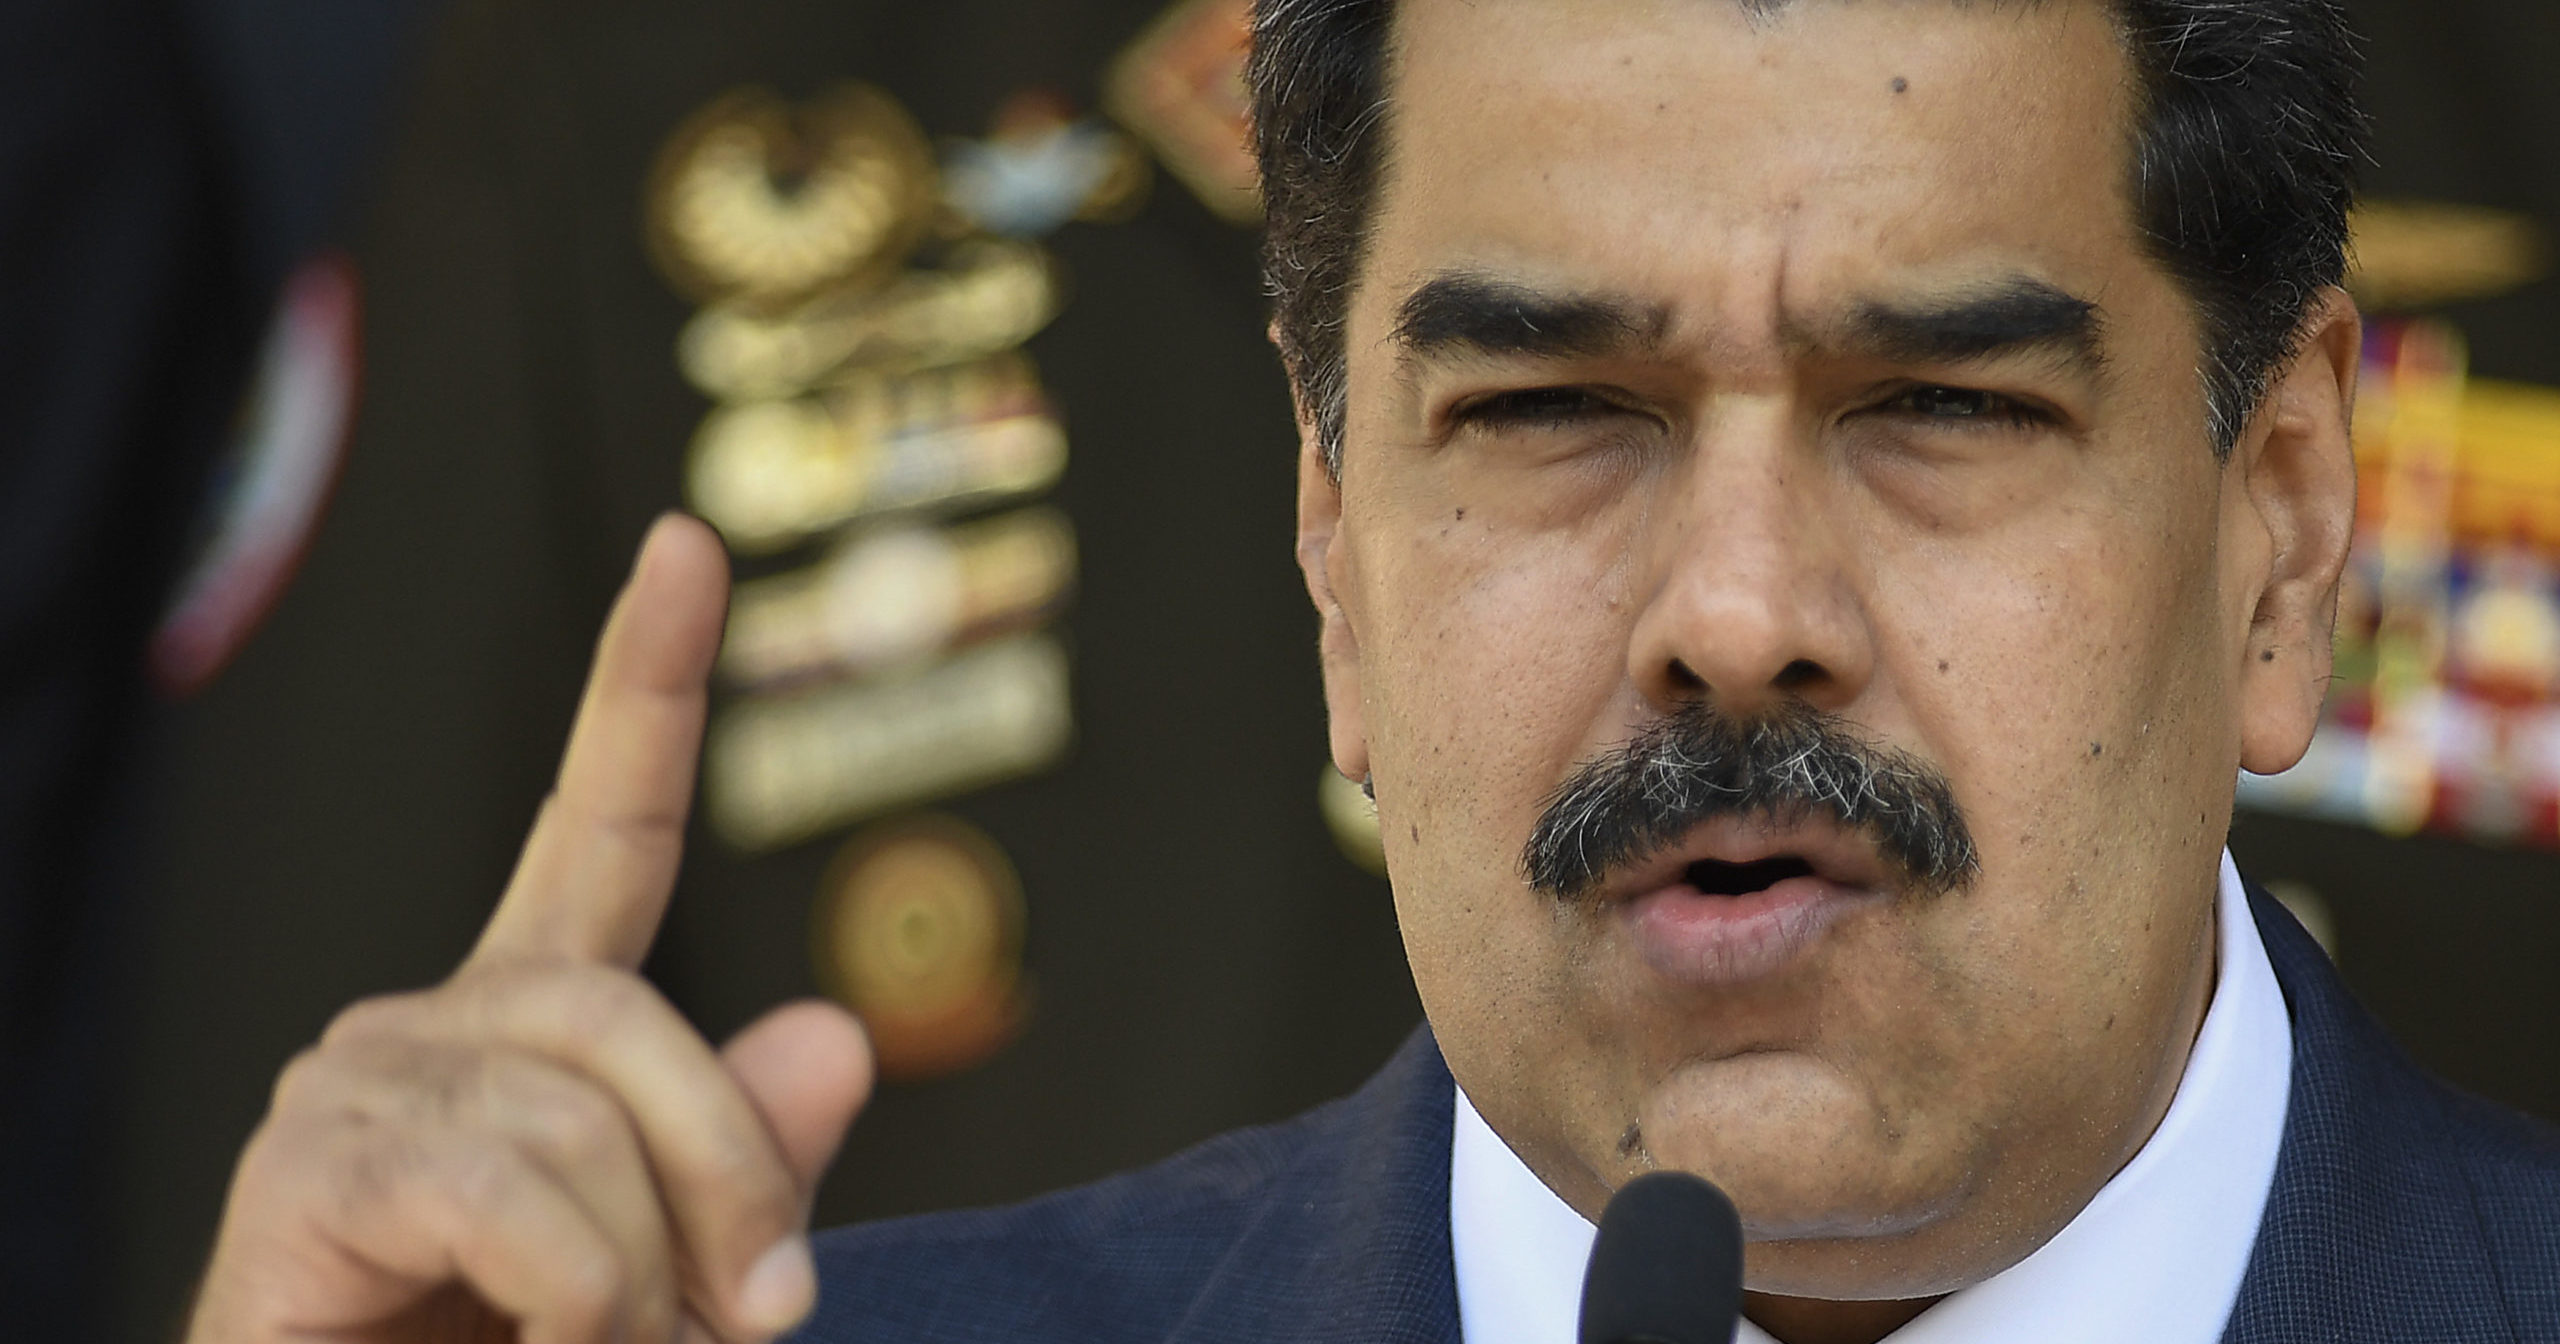 In this March 12, 2020, file photo, Nicolas Maduro speaks at a news conference in Caracas, Venezuela.